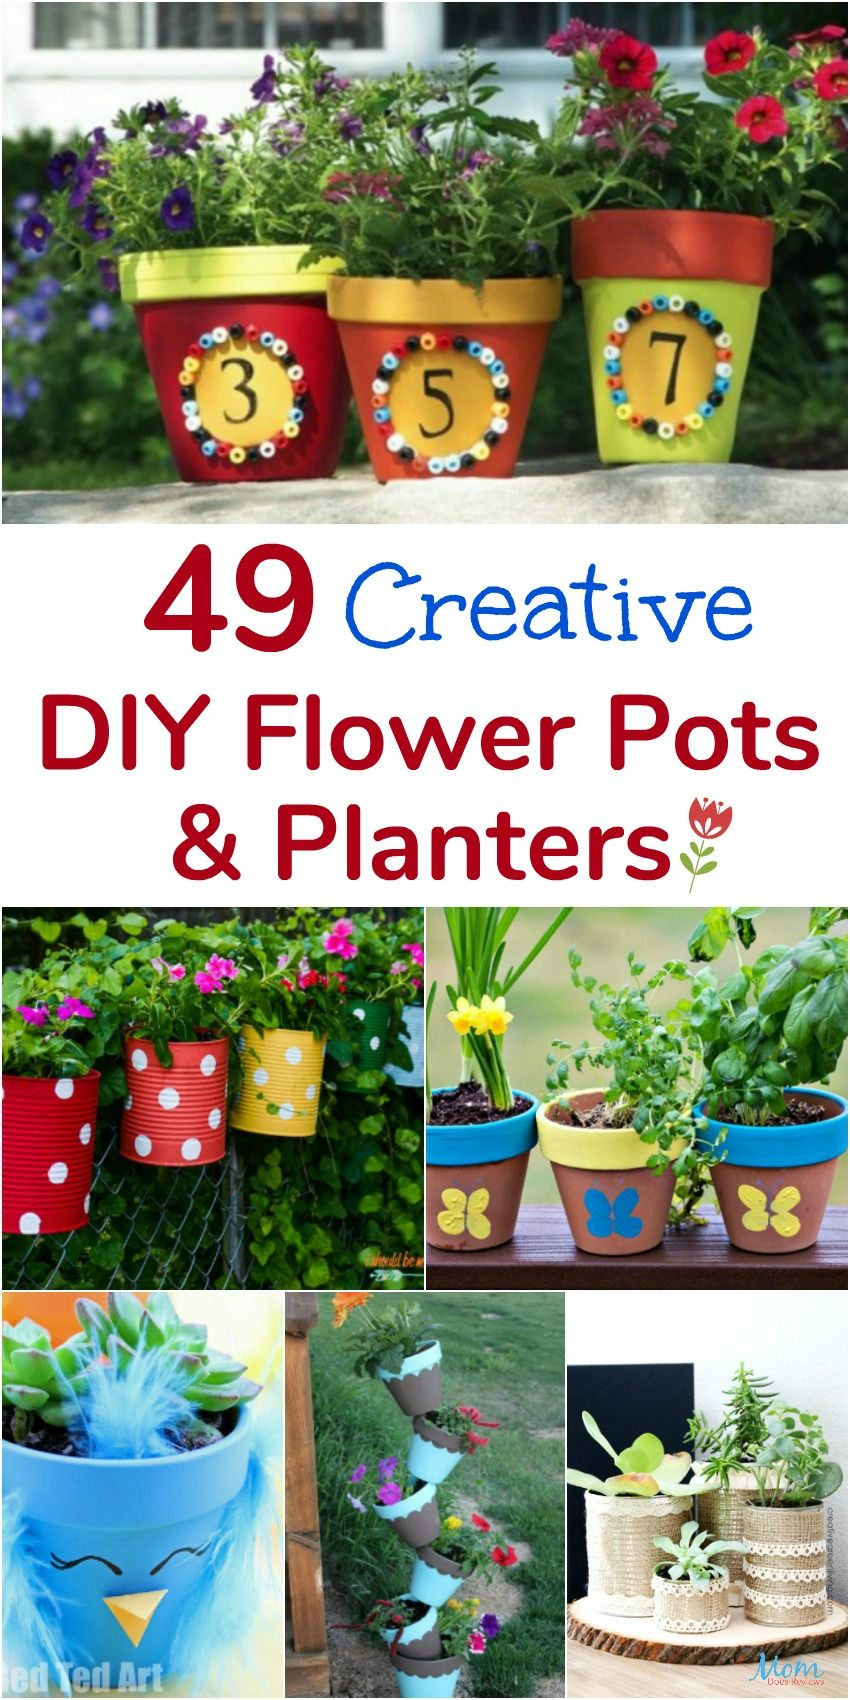 49 creative diy flower pots and planters that are fun and